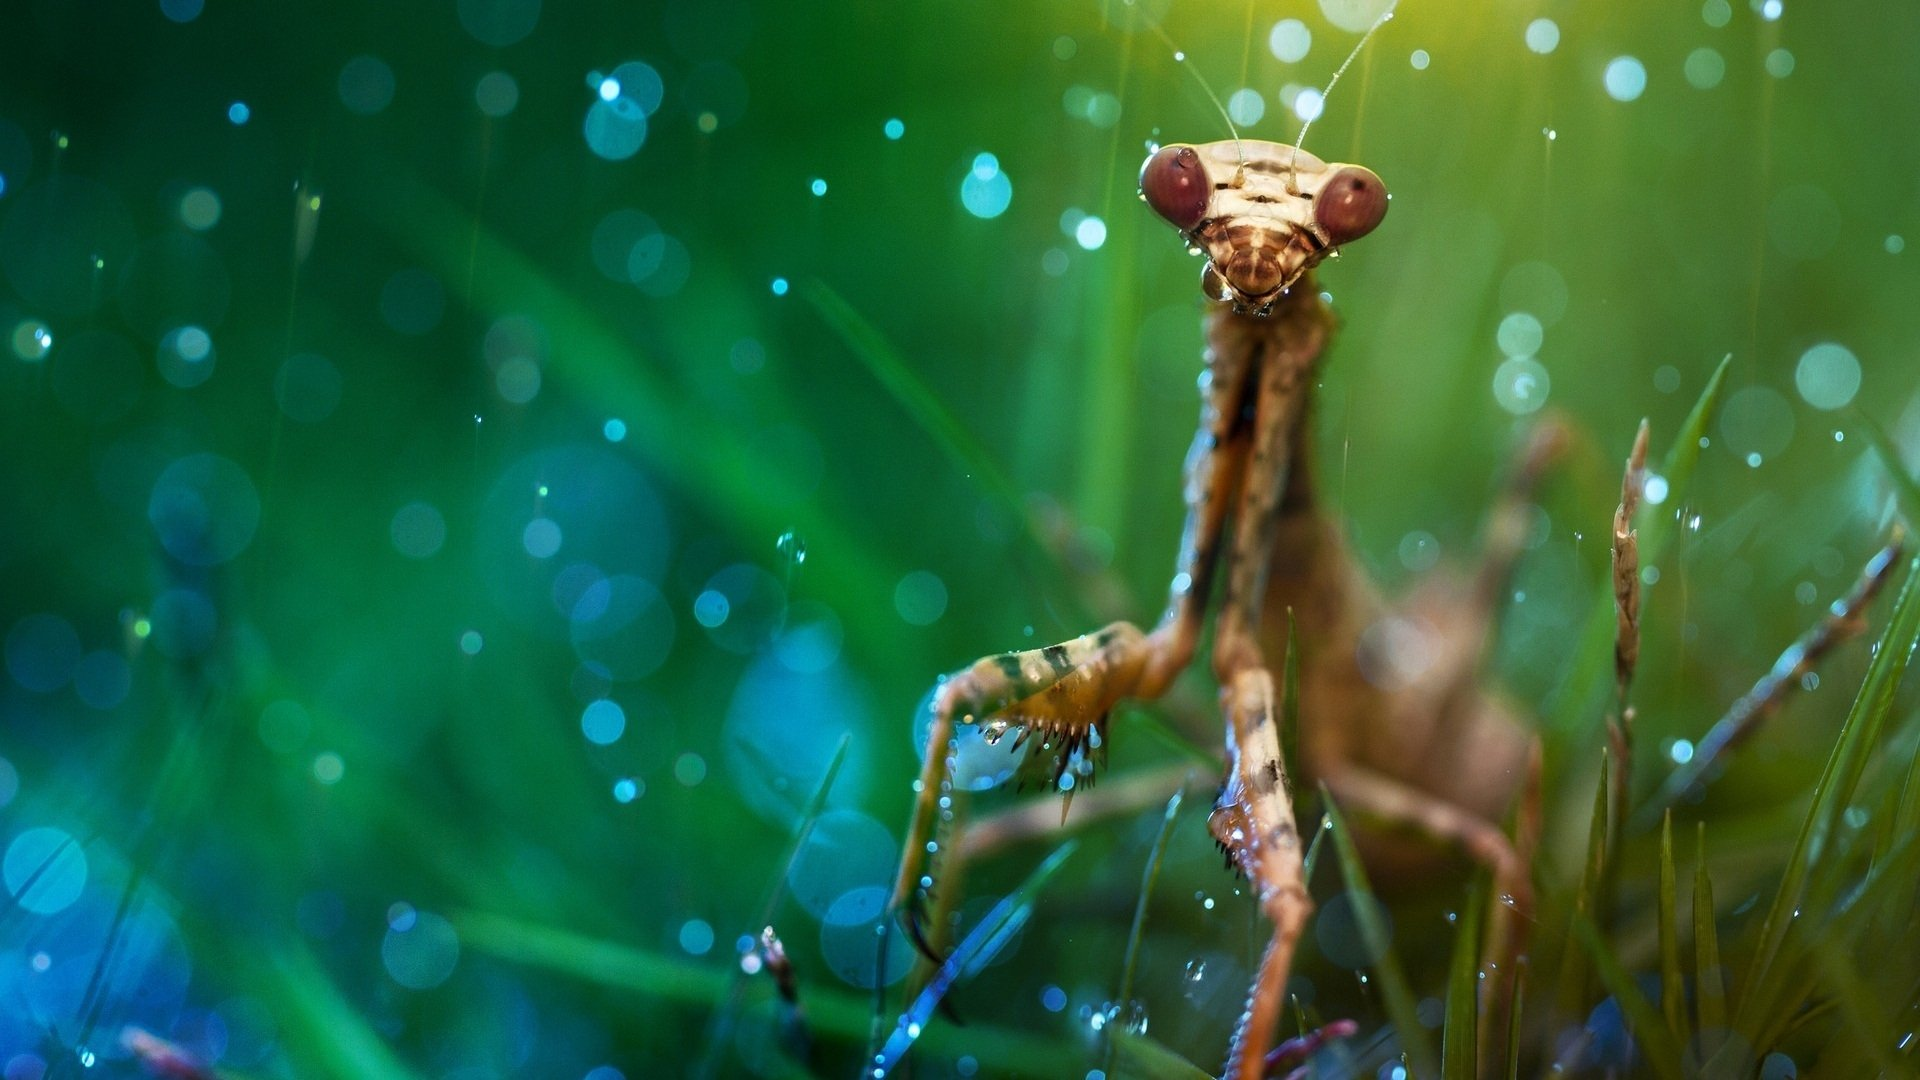 16 praying mantis hd wallpapers | background images - wallpaper abyss